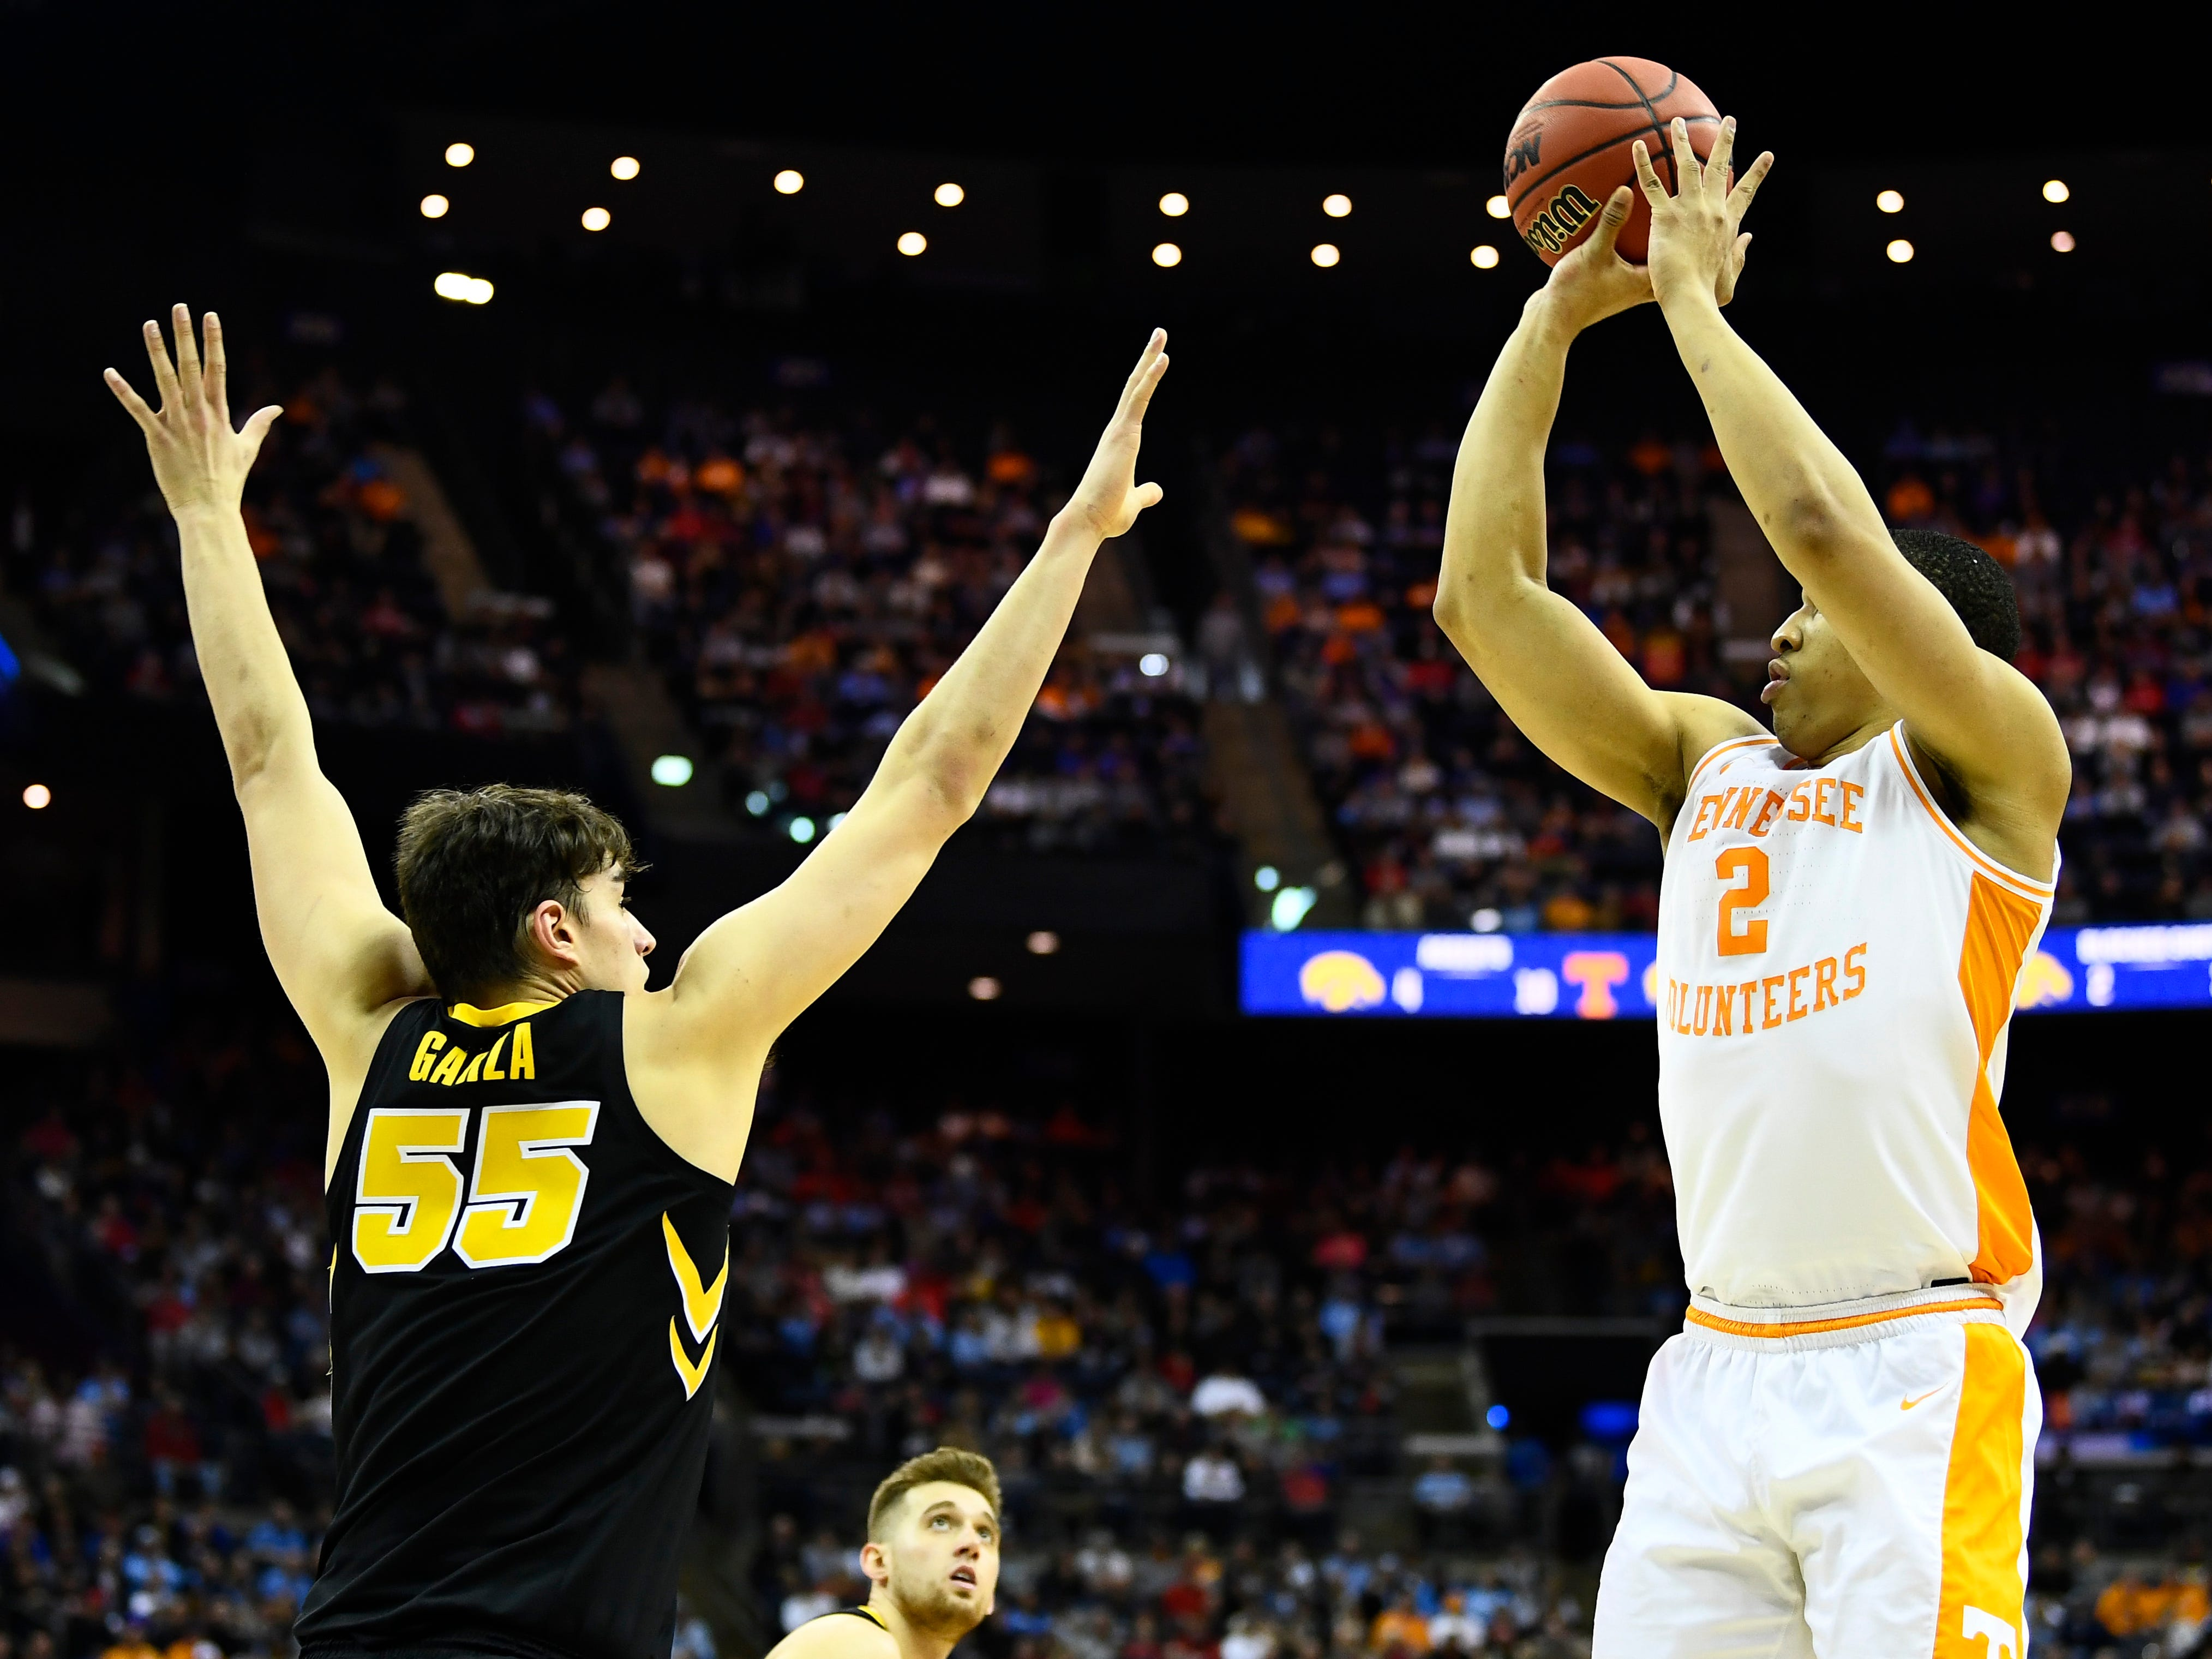 Tennessee forward Grant Williams (2) shoots over Iowa forward Luka Garza (55) during the secod half in the second round of the NCAA Tournament at Nationwide Arena in Columbus, Ohio, Sunday, March 24, 2019.